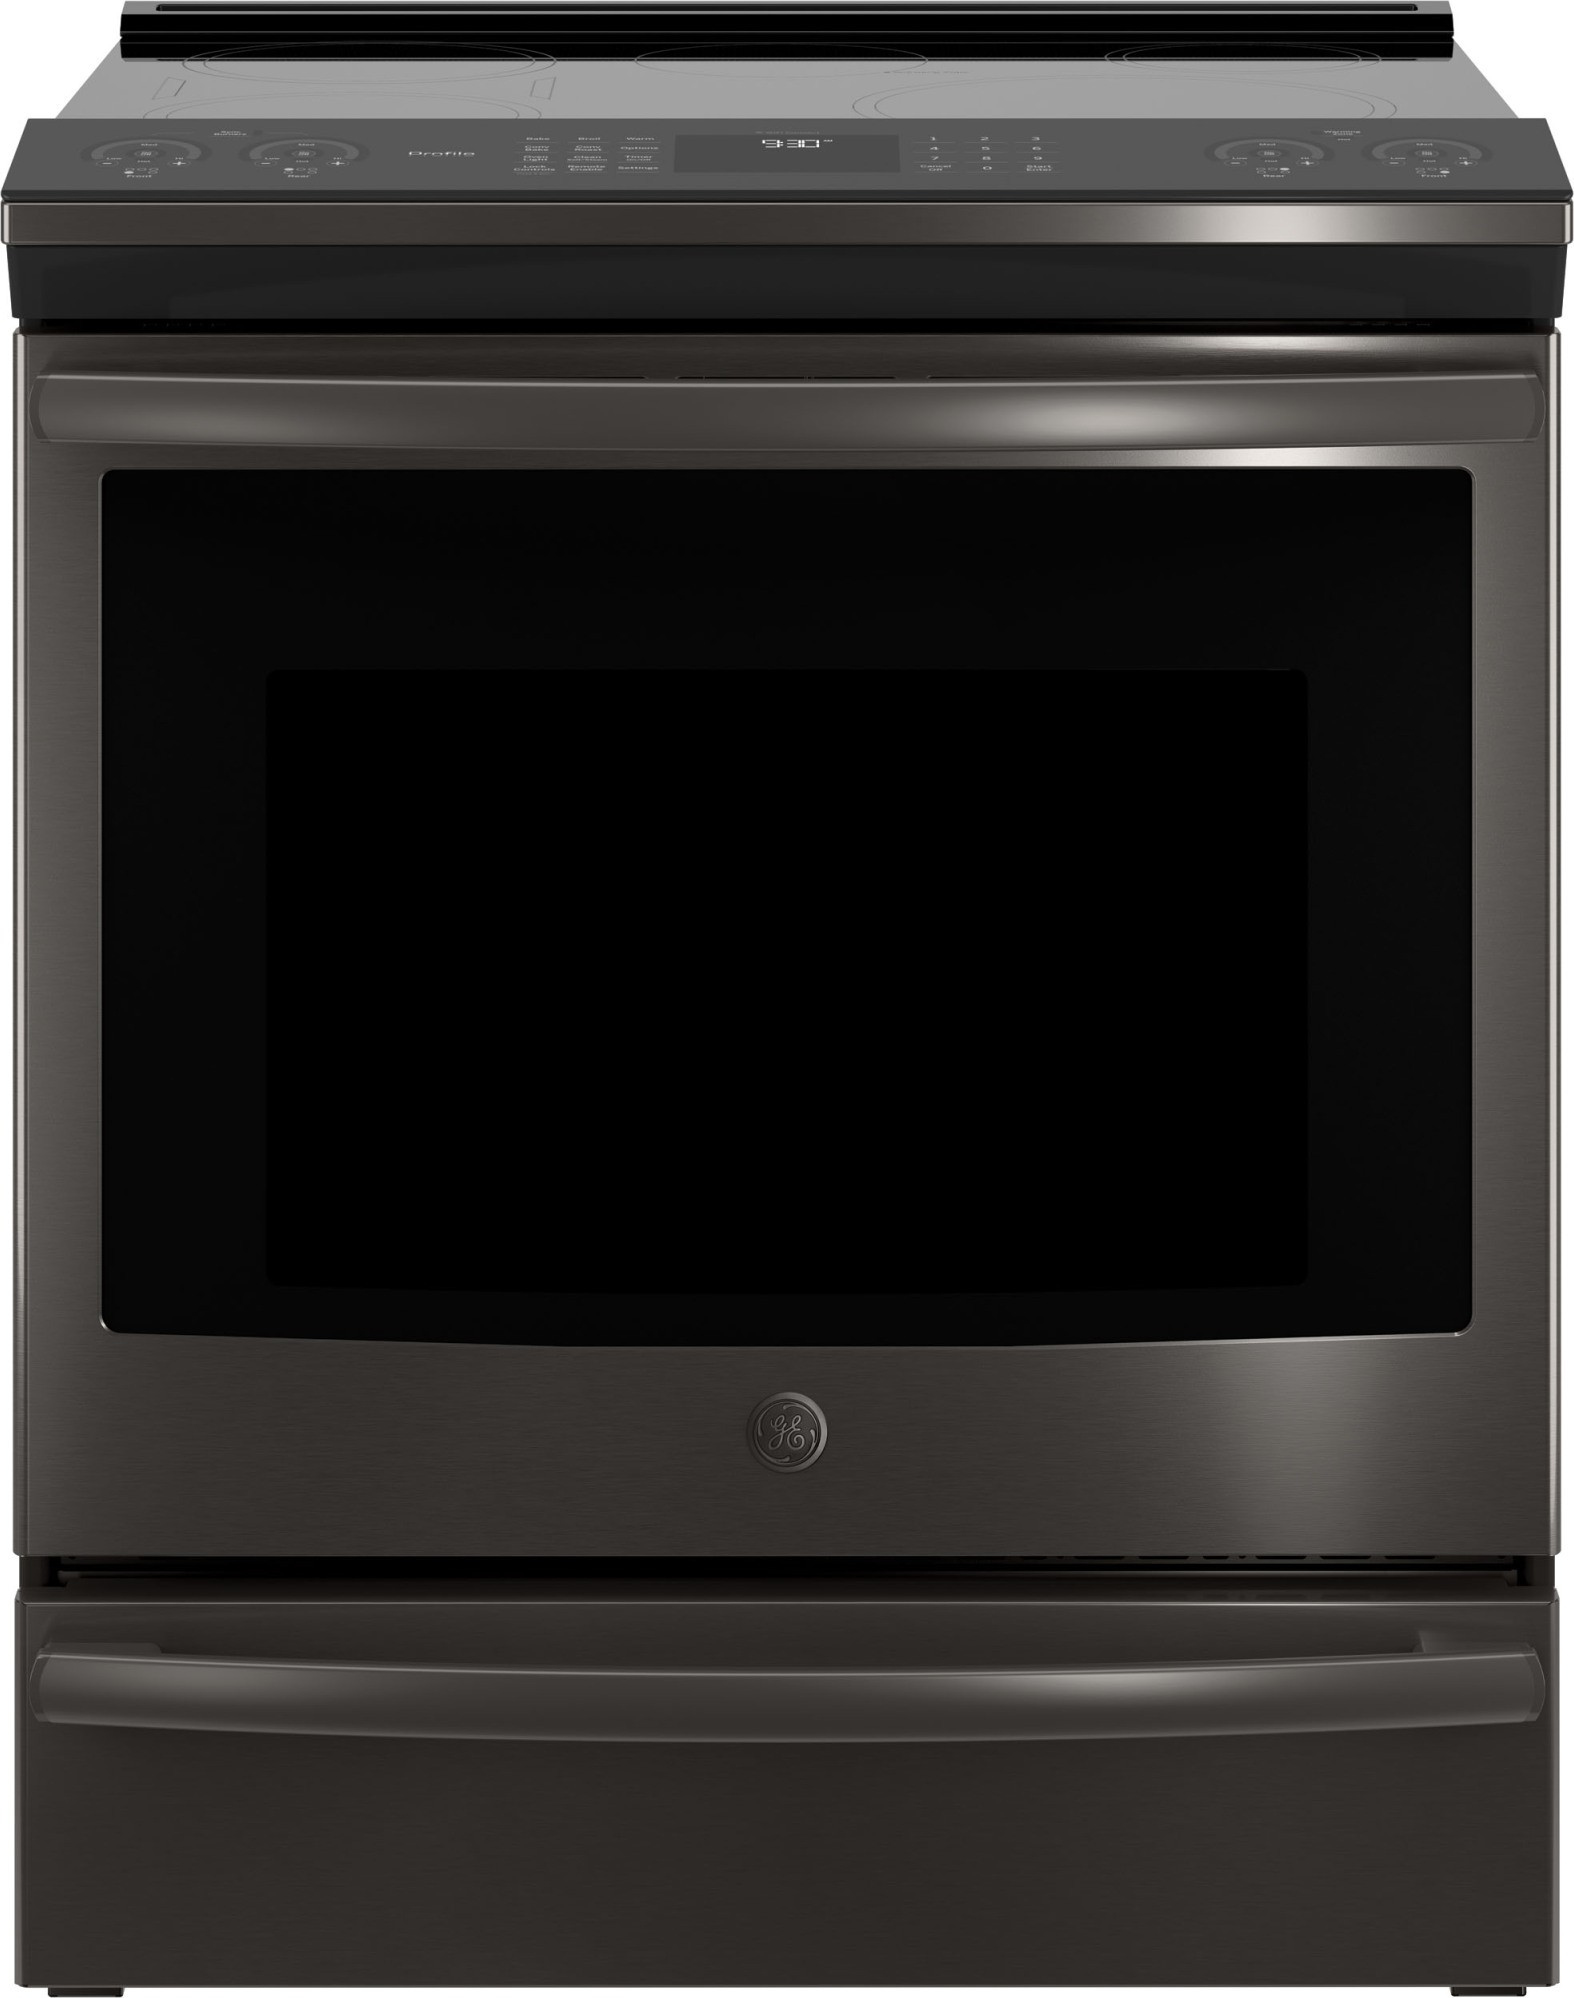 Phs930blts Ge Profile 30 Quot Slide In Induction Range Wifi